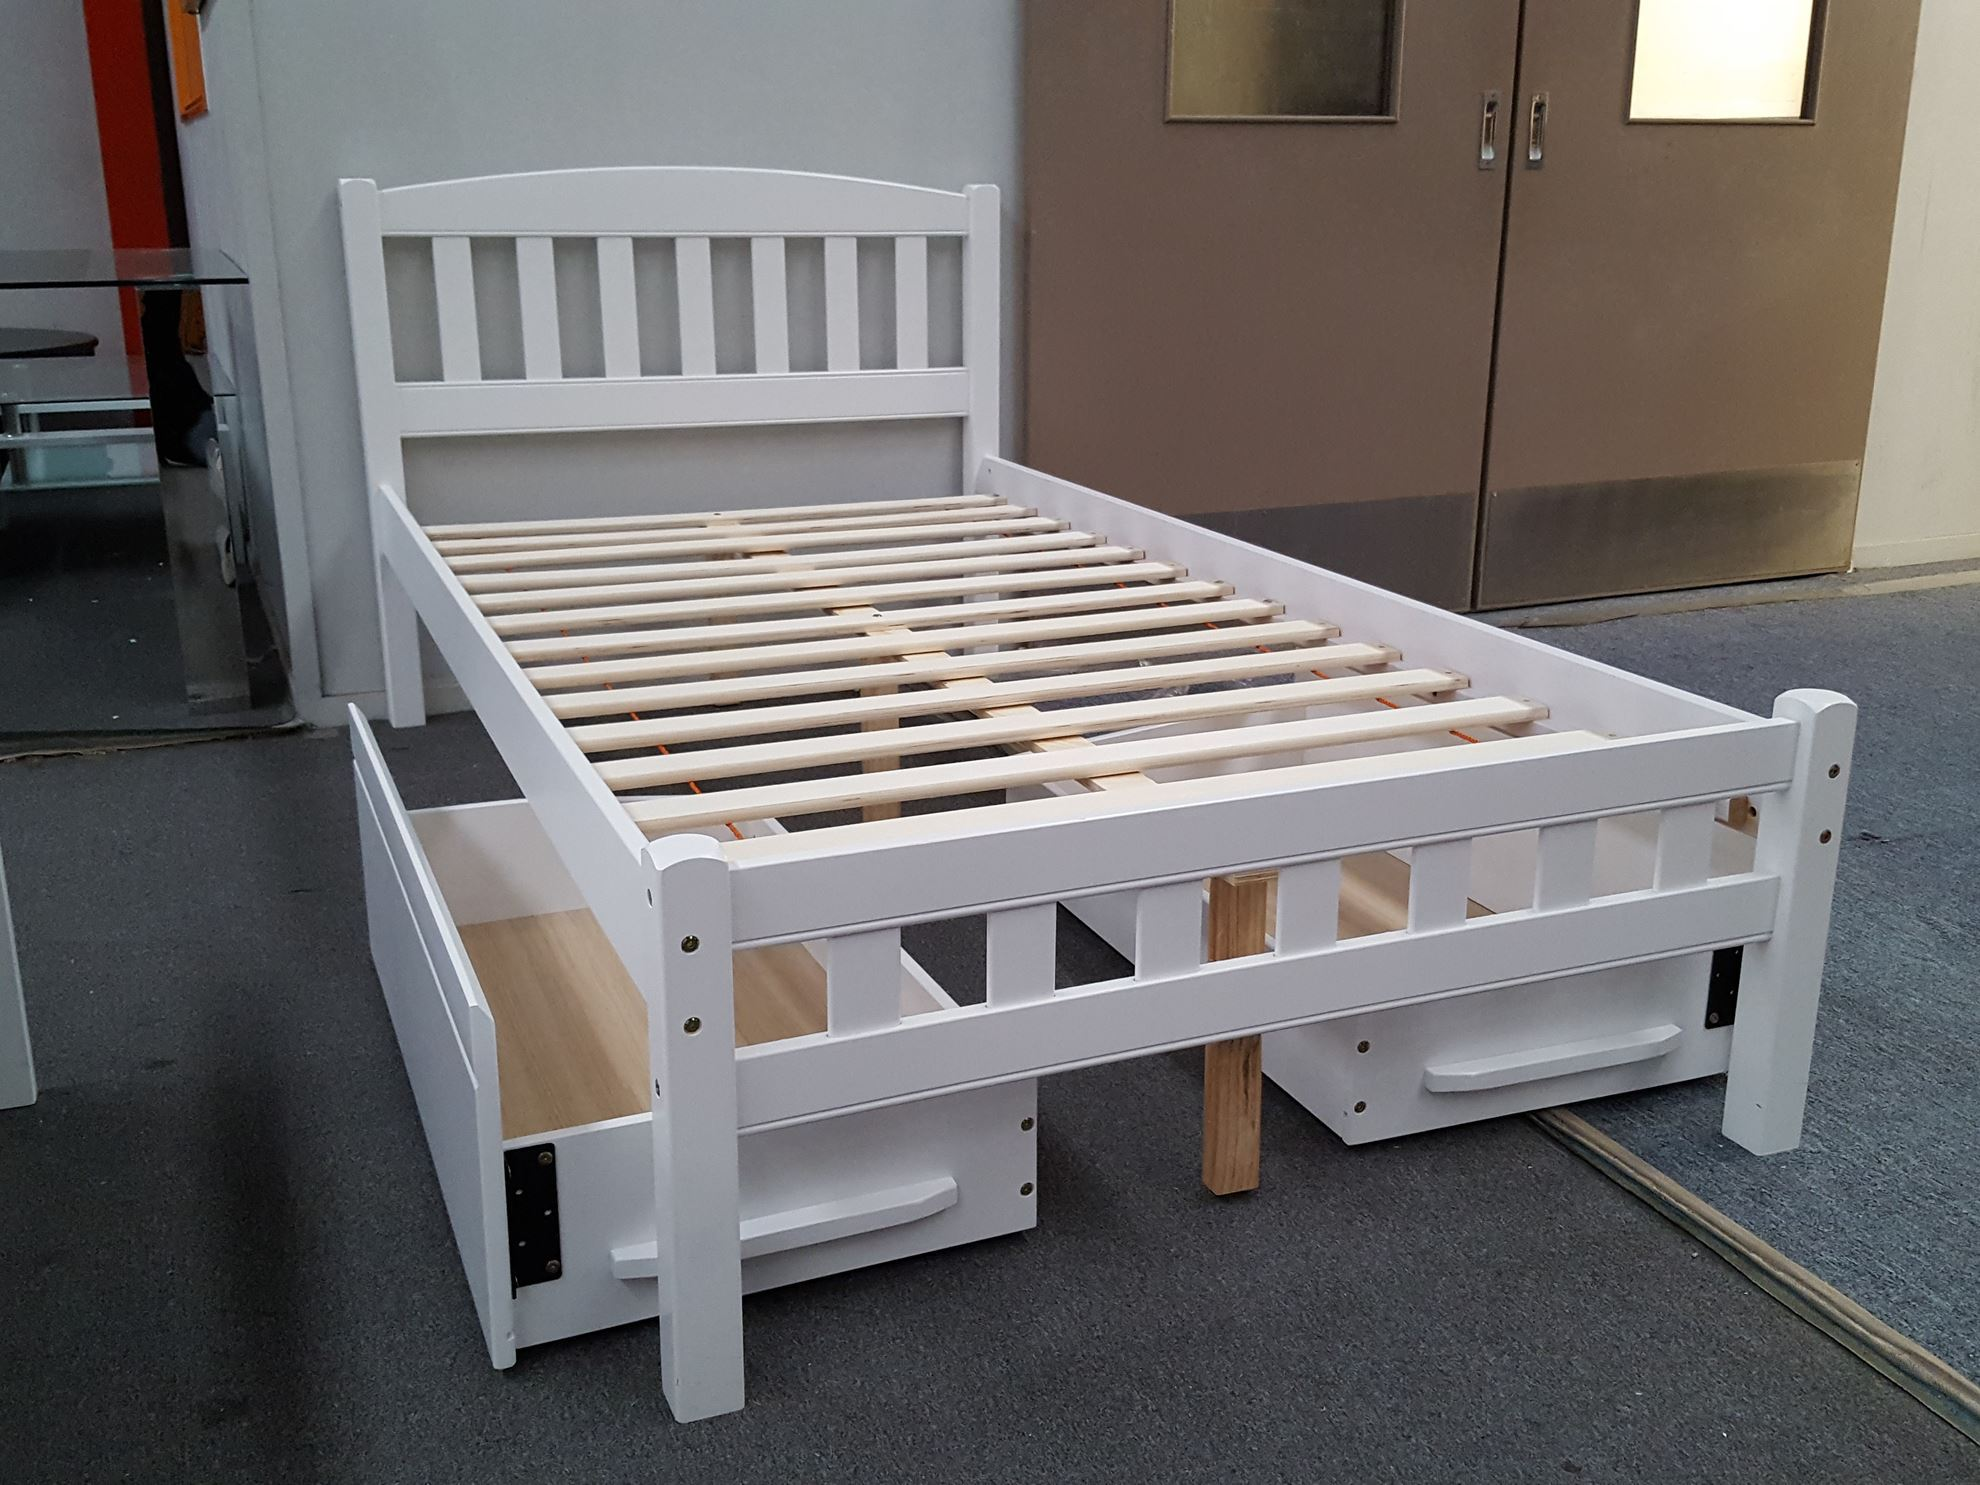 Zara king single bed in white with 2x drawers furniture for Single bed with drawers and mattress